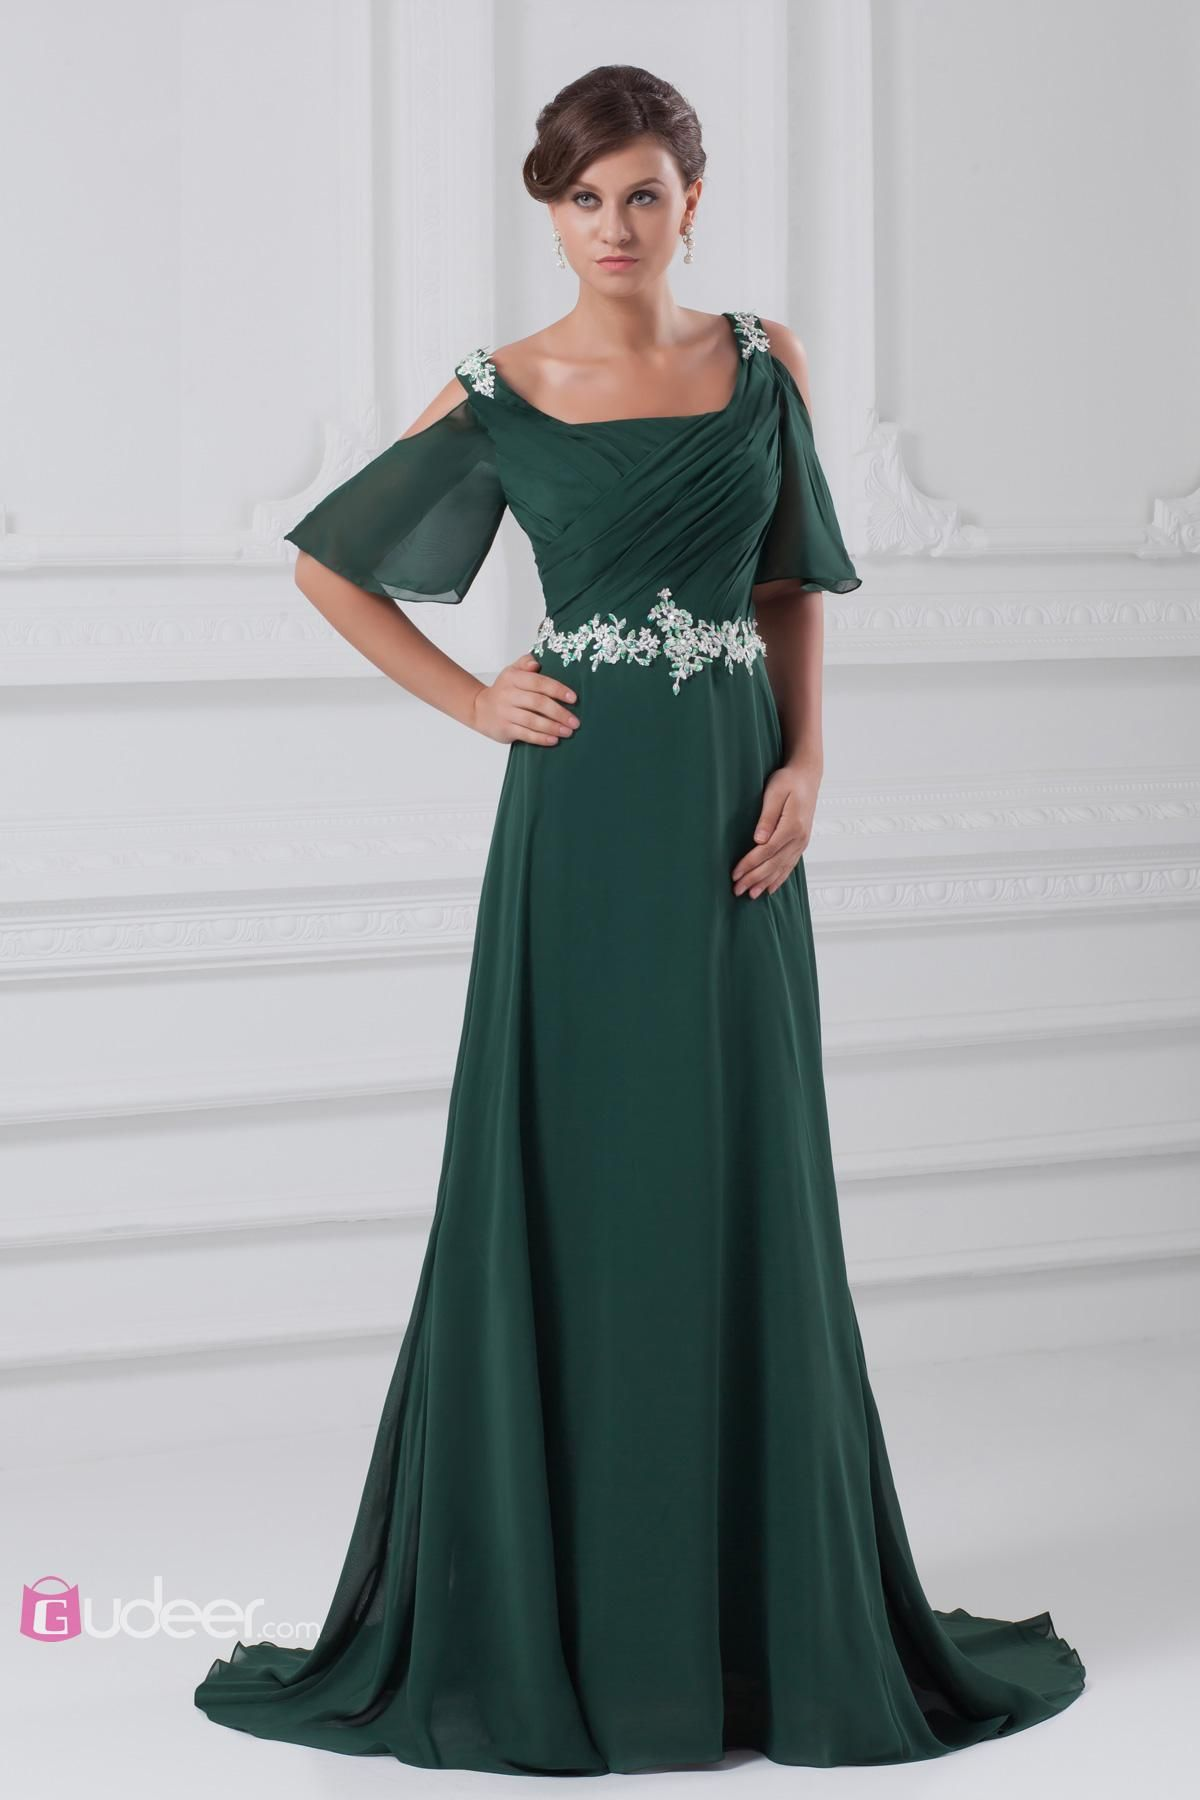 Dark Green Off-the-shoulder Prom Dress A-Line Long Gown with Short ...